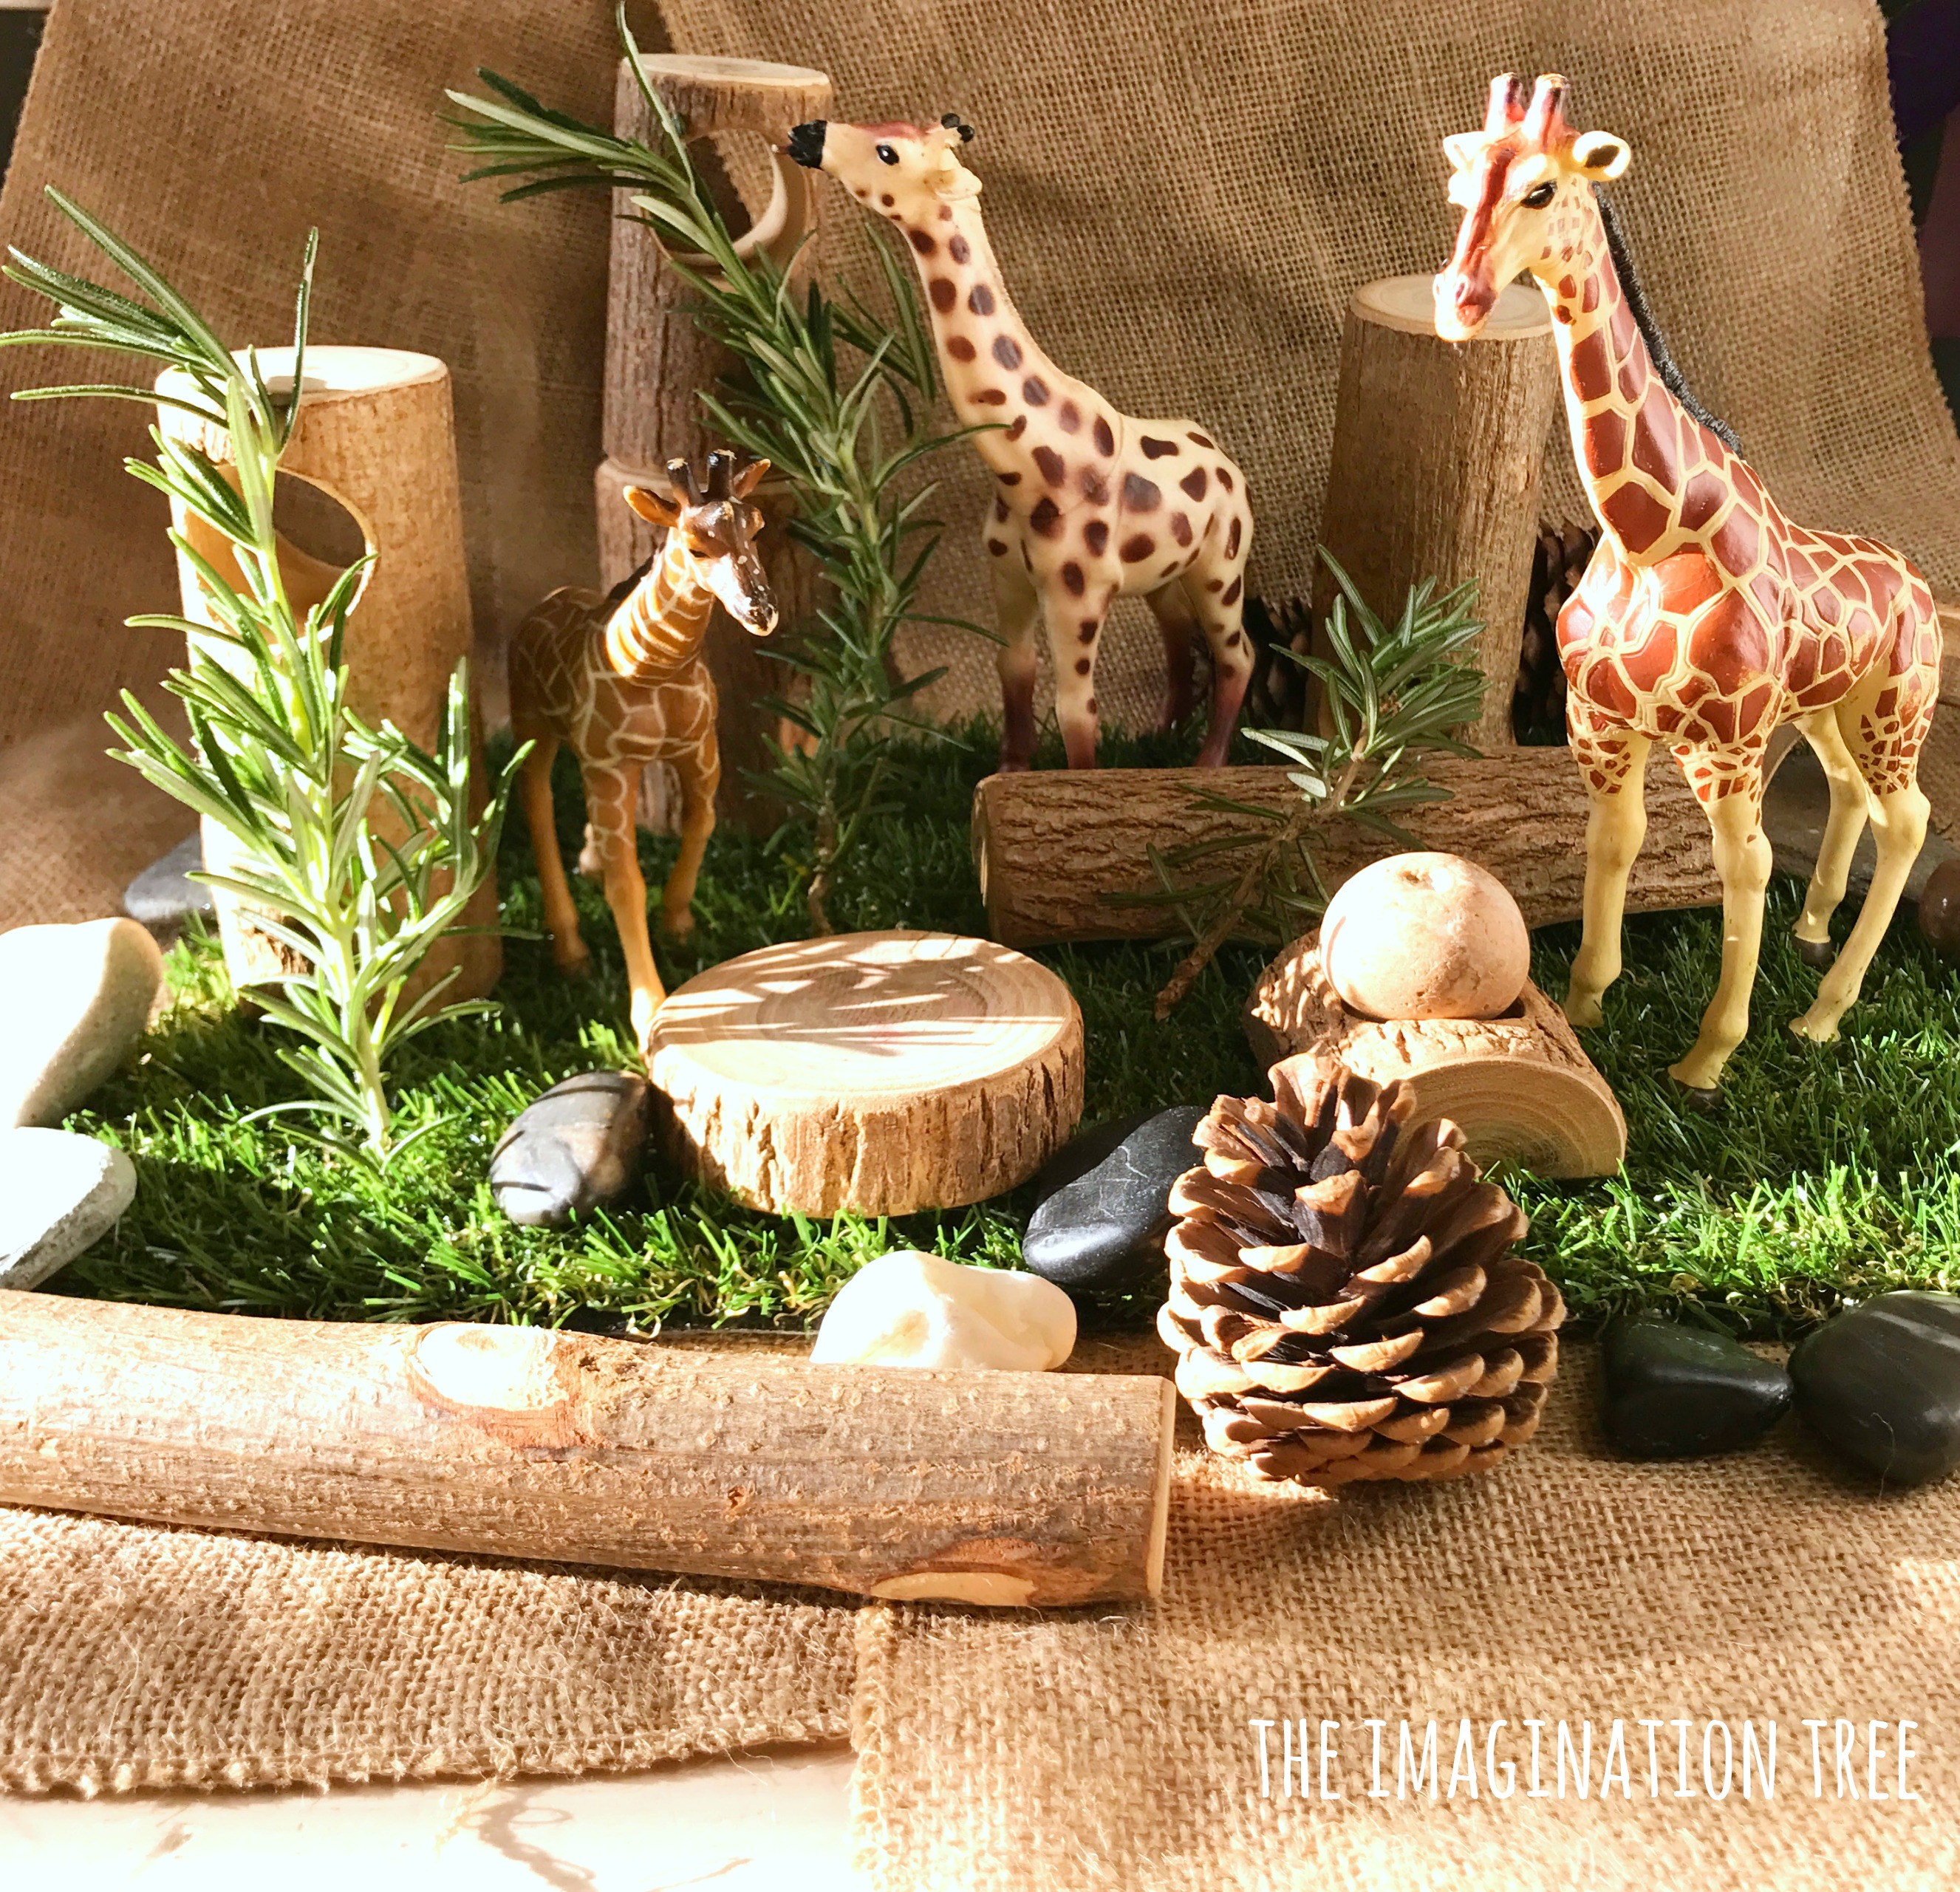 Natural Animal Small World Play The Imagination Tree